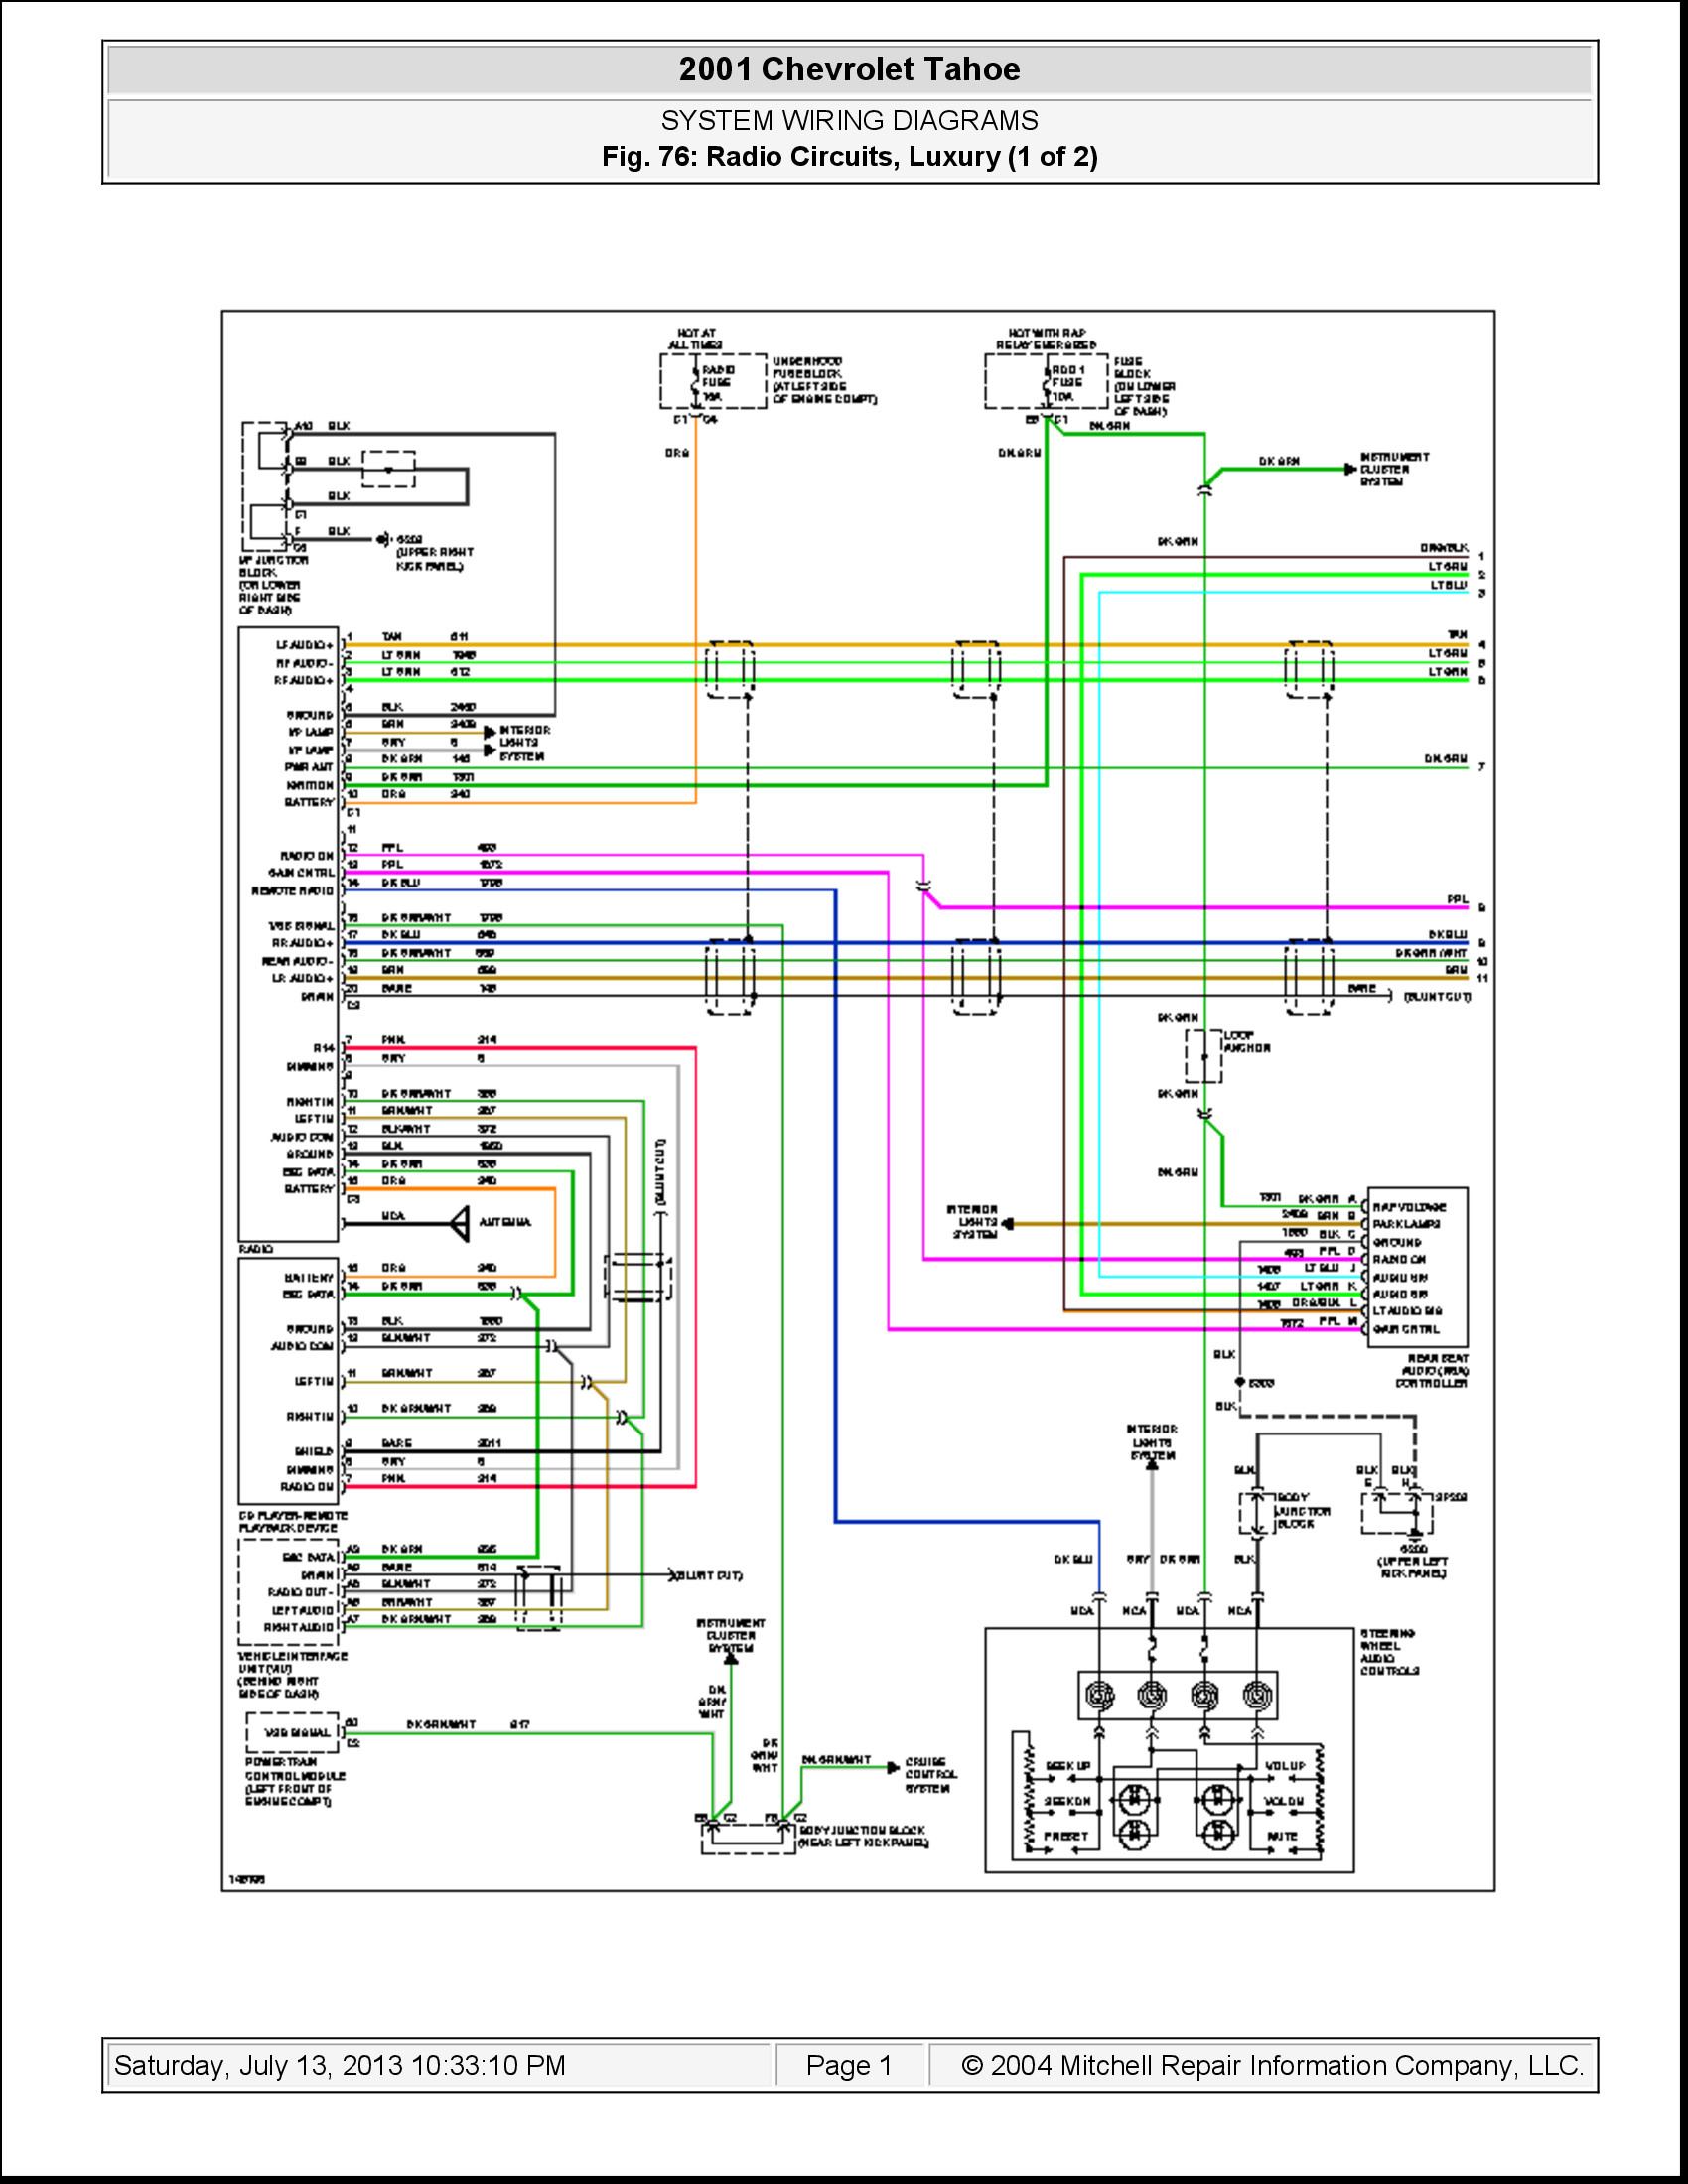 2001 honda accord car stereo radio wiring diagram Collection-Audi A4 Cd Player Wiring Diagram Refrence Diagram 2005 Honda Accord Radio Wiring Diagram 10-o